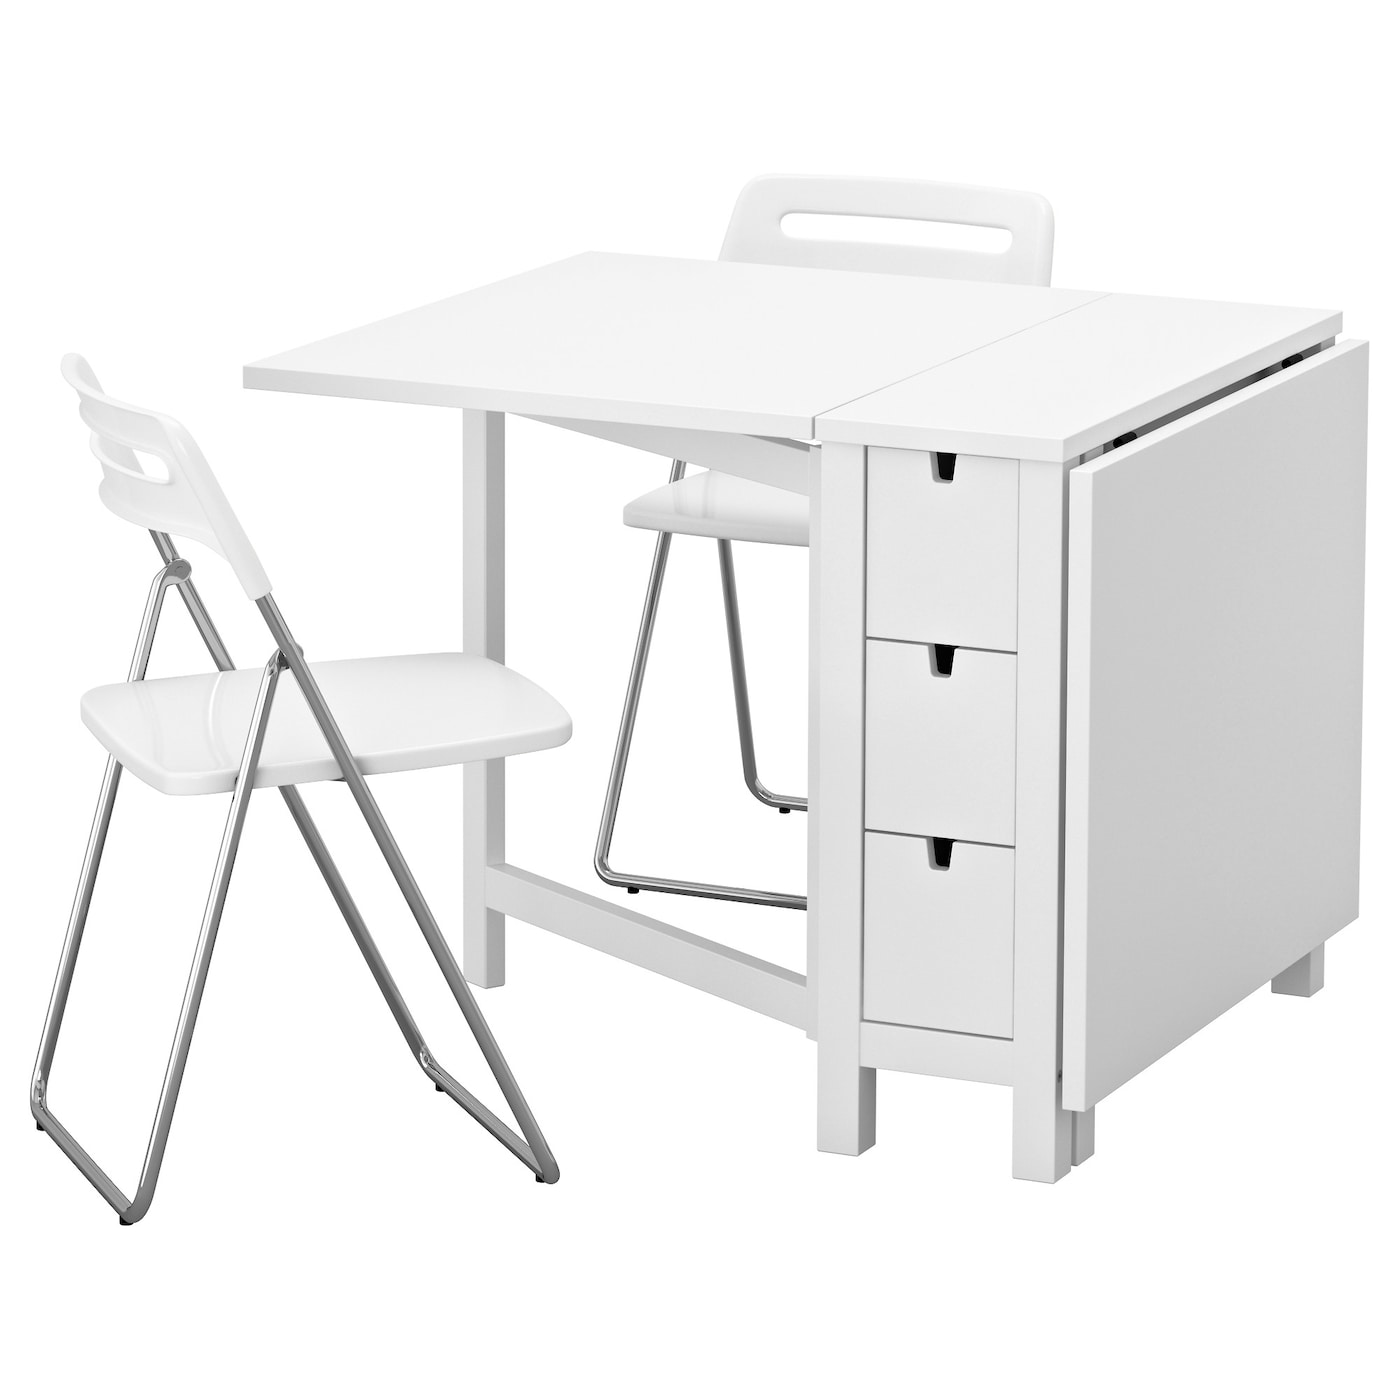 Ikea Folding Kitchen Table And Chairs